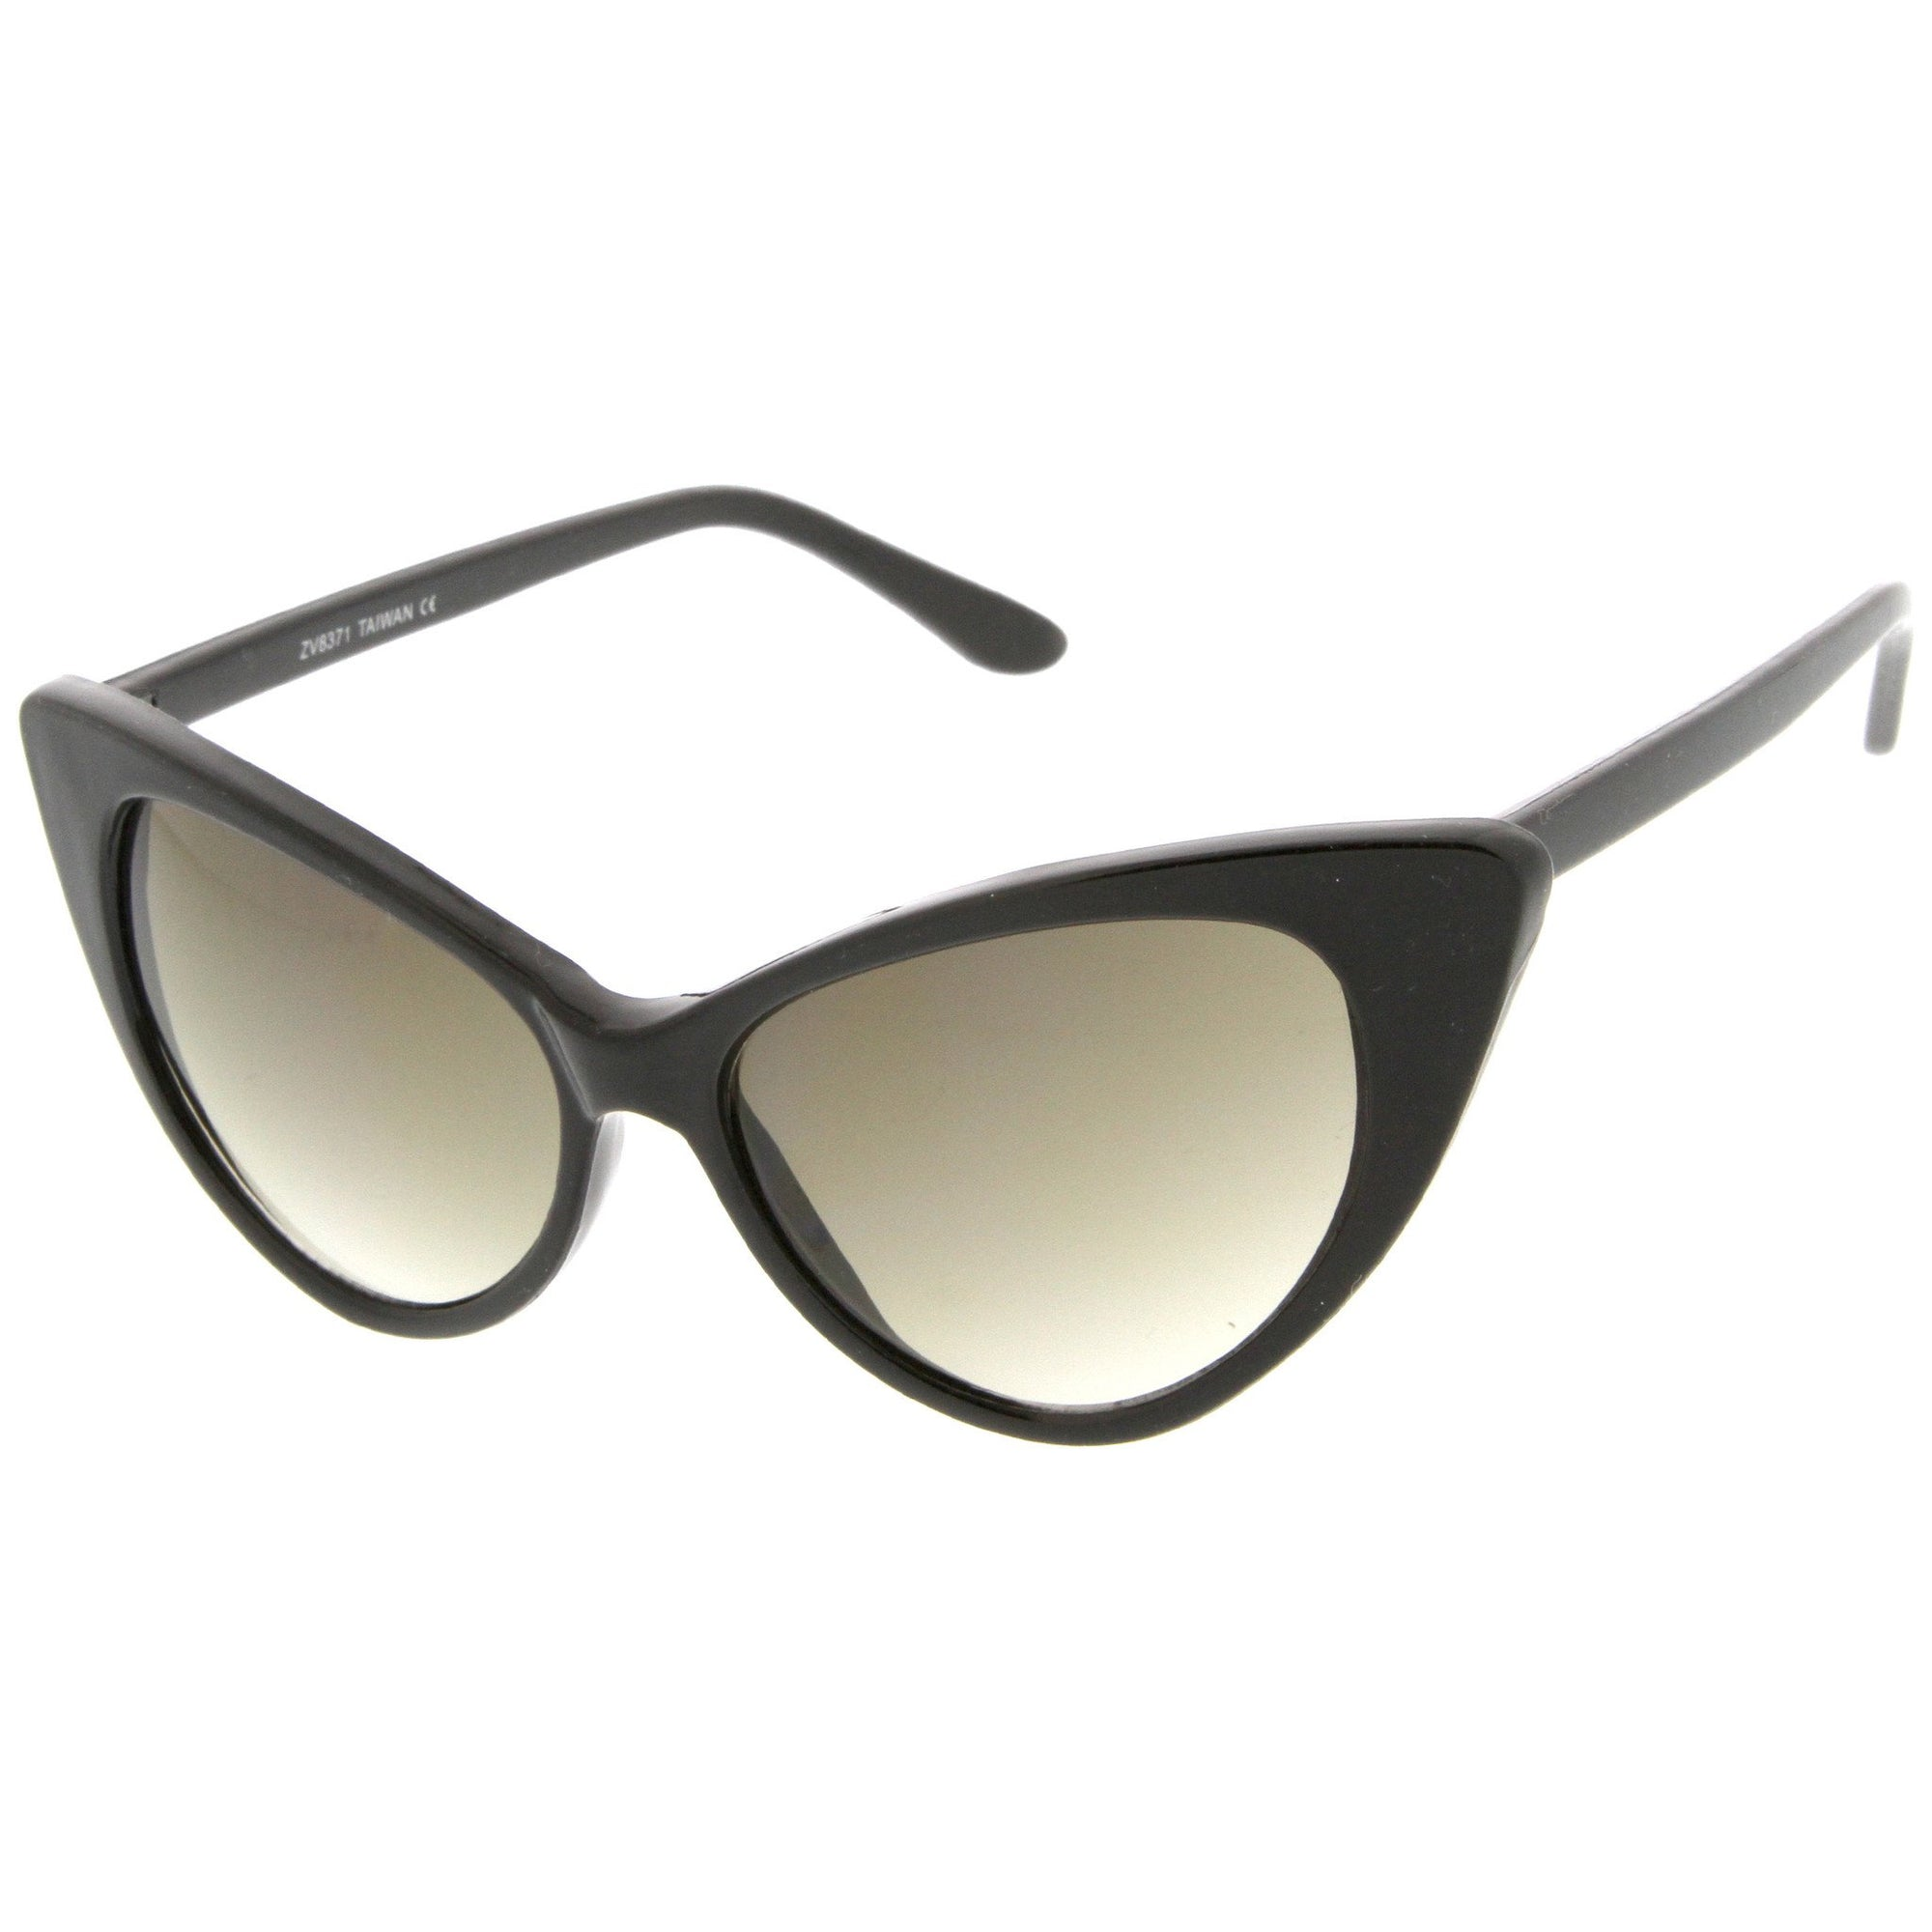 8e0eb55506827 ... Womens Fashion Hot Tip Pointed Vintage Cat Eye Sunglasses 8371 · Black  Gradient · Black Gradient